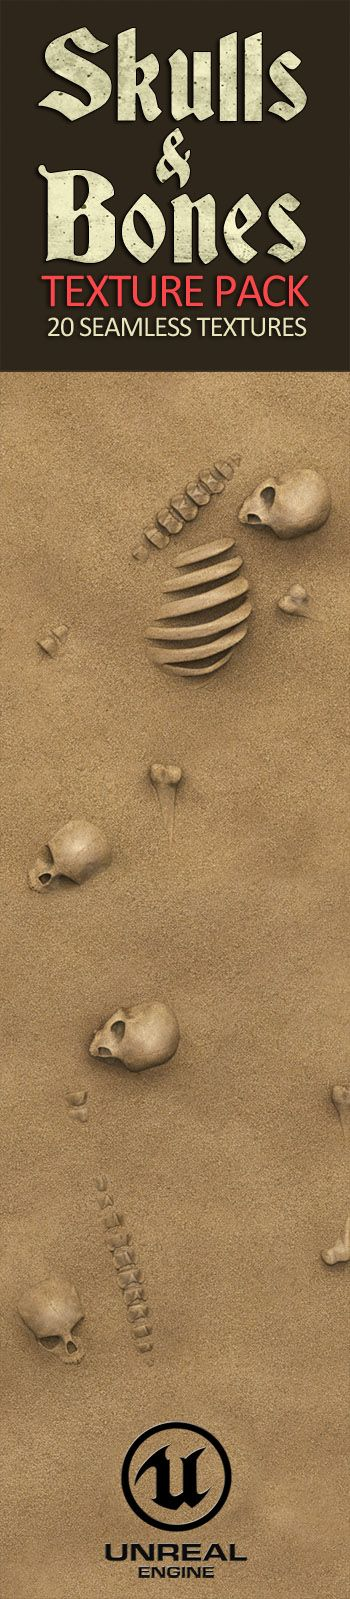 Skulls and Bones Textures for Unreal Engine 4. 20 Seamless Textures and Materials. Skulls and Bones combined with mud, sand, water, snow and rocks. 2D 3D game textures for Unreal Engine Game Asset. PBR sculpted textures.